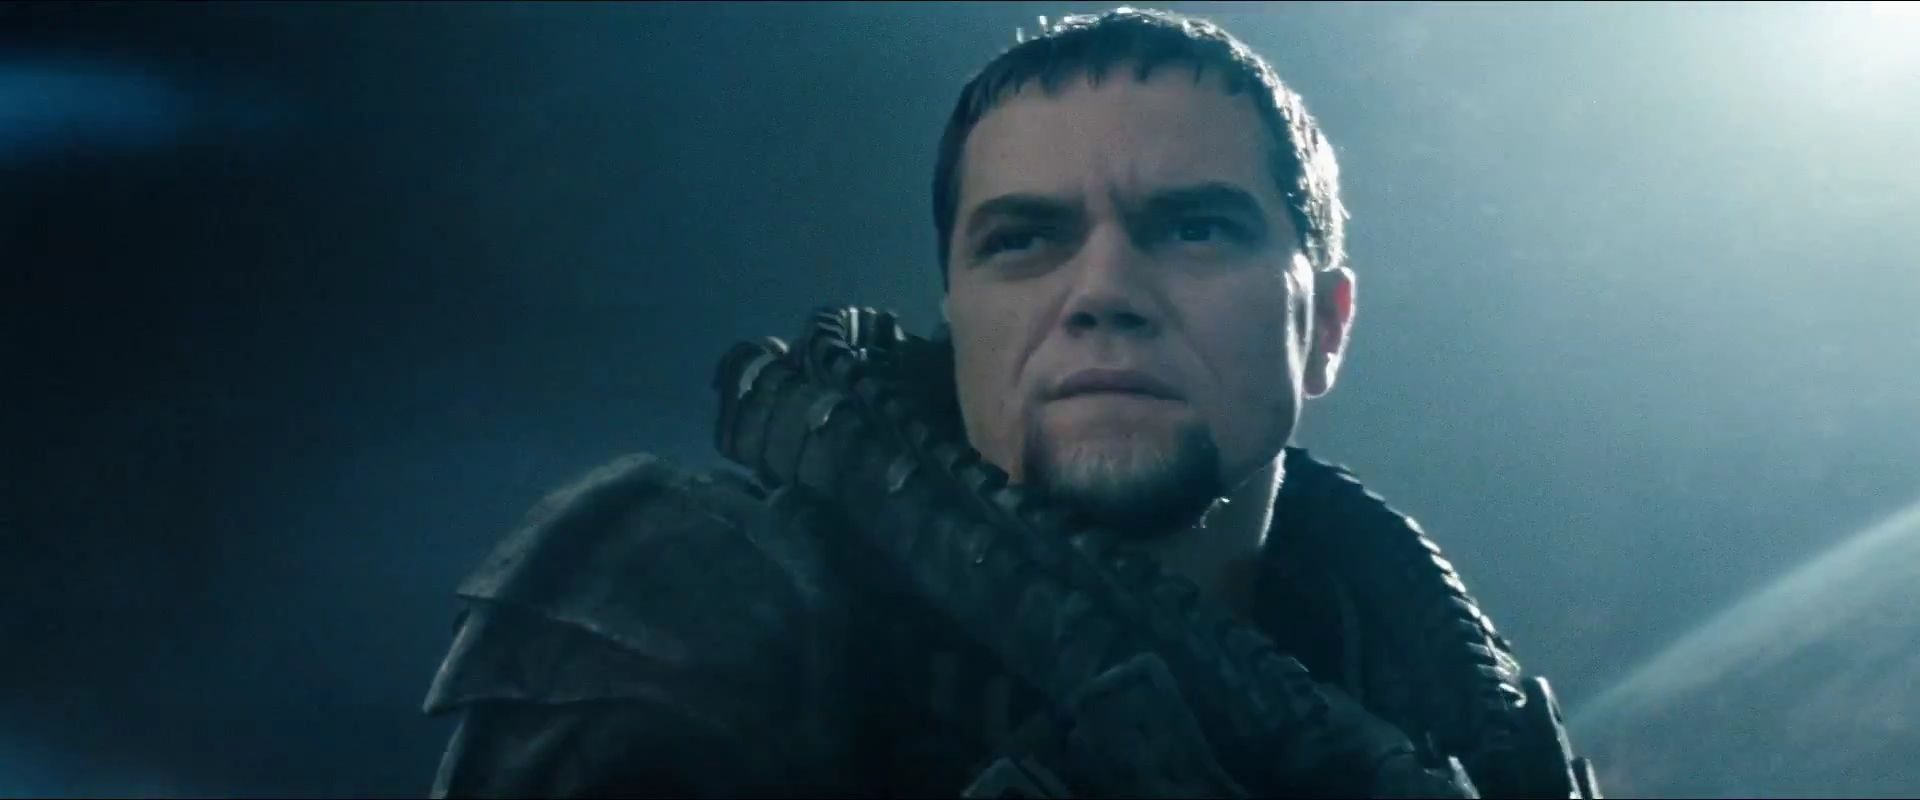 Man-of-Steel-Trailer-Images-Michael-Shannon-as-General-ZodMan Of Steel Wallpaper Zod